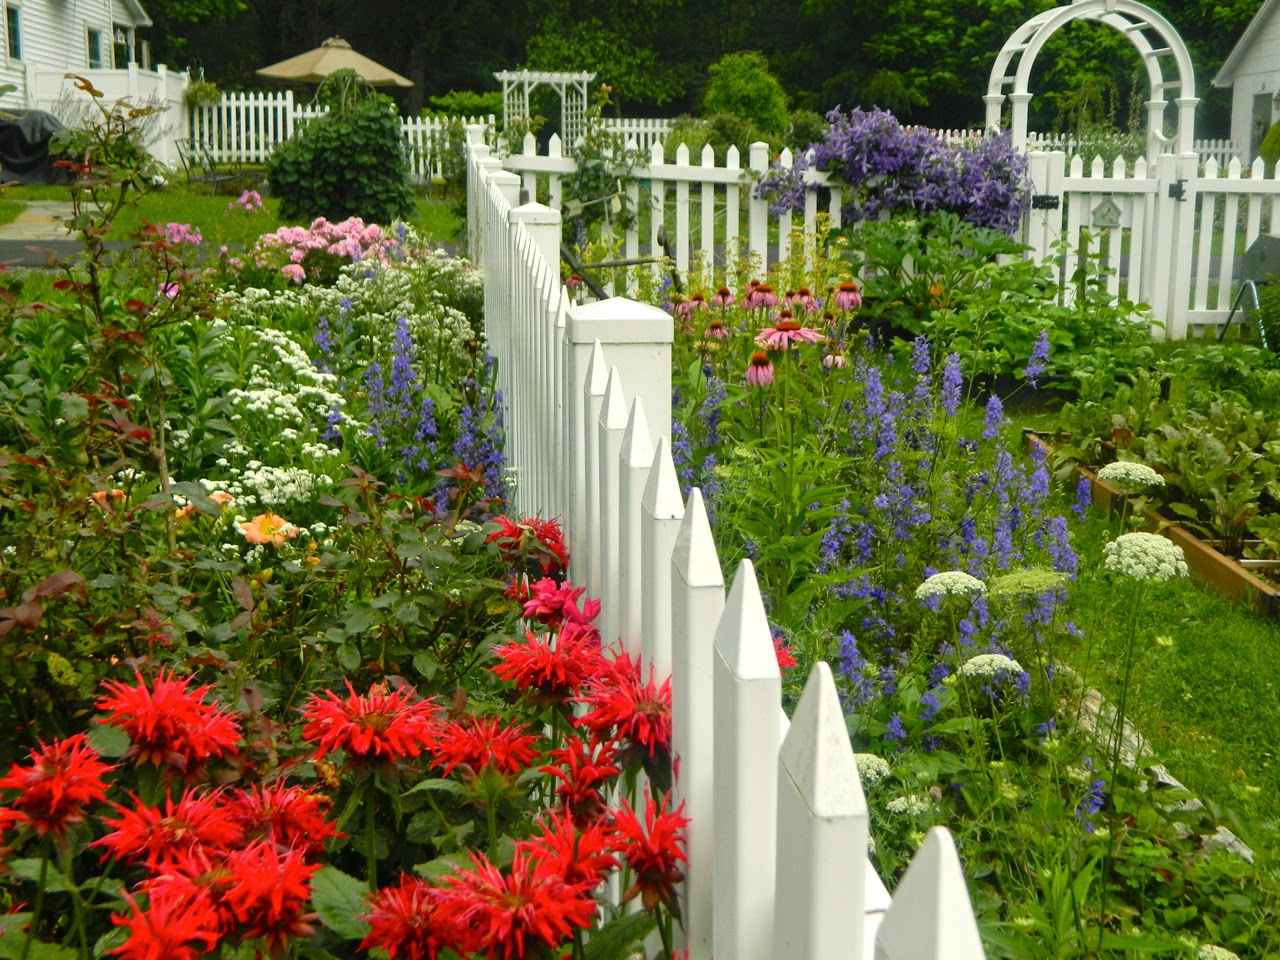 Garden style the english cottage garden where the old - Old Fashioned Flowers